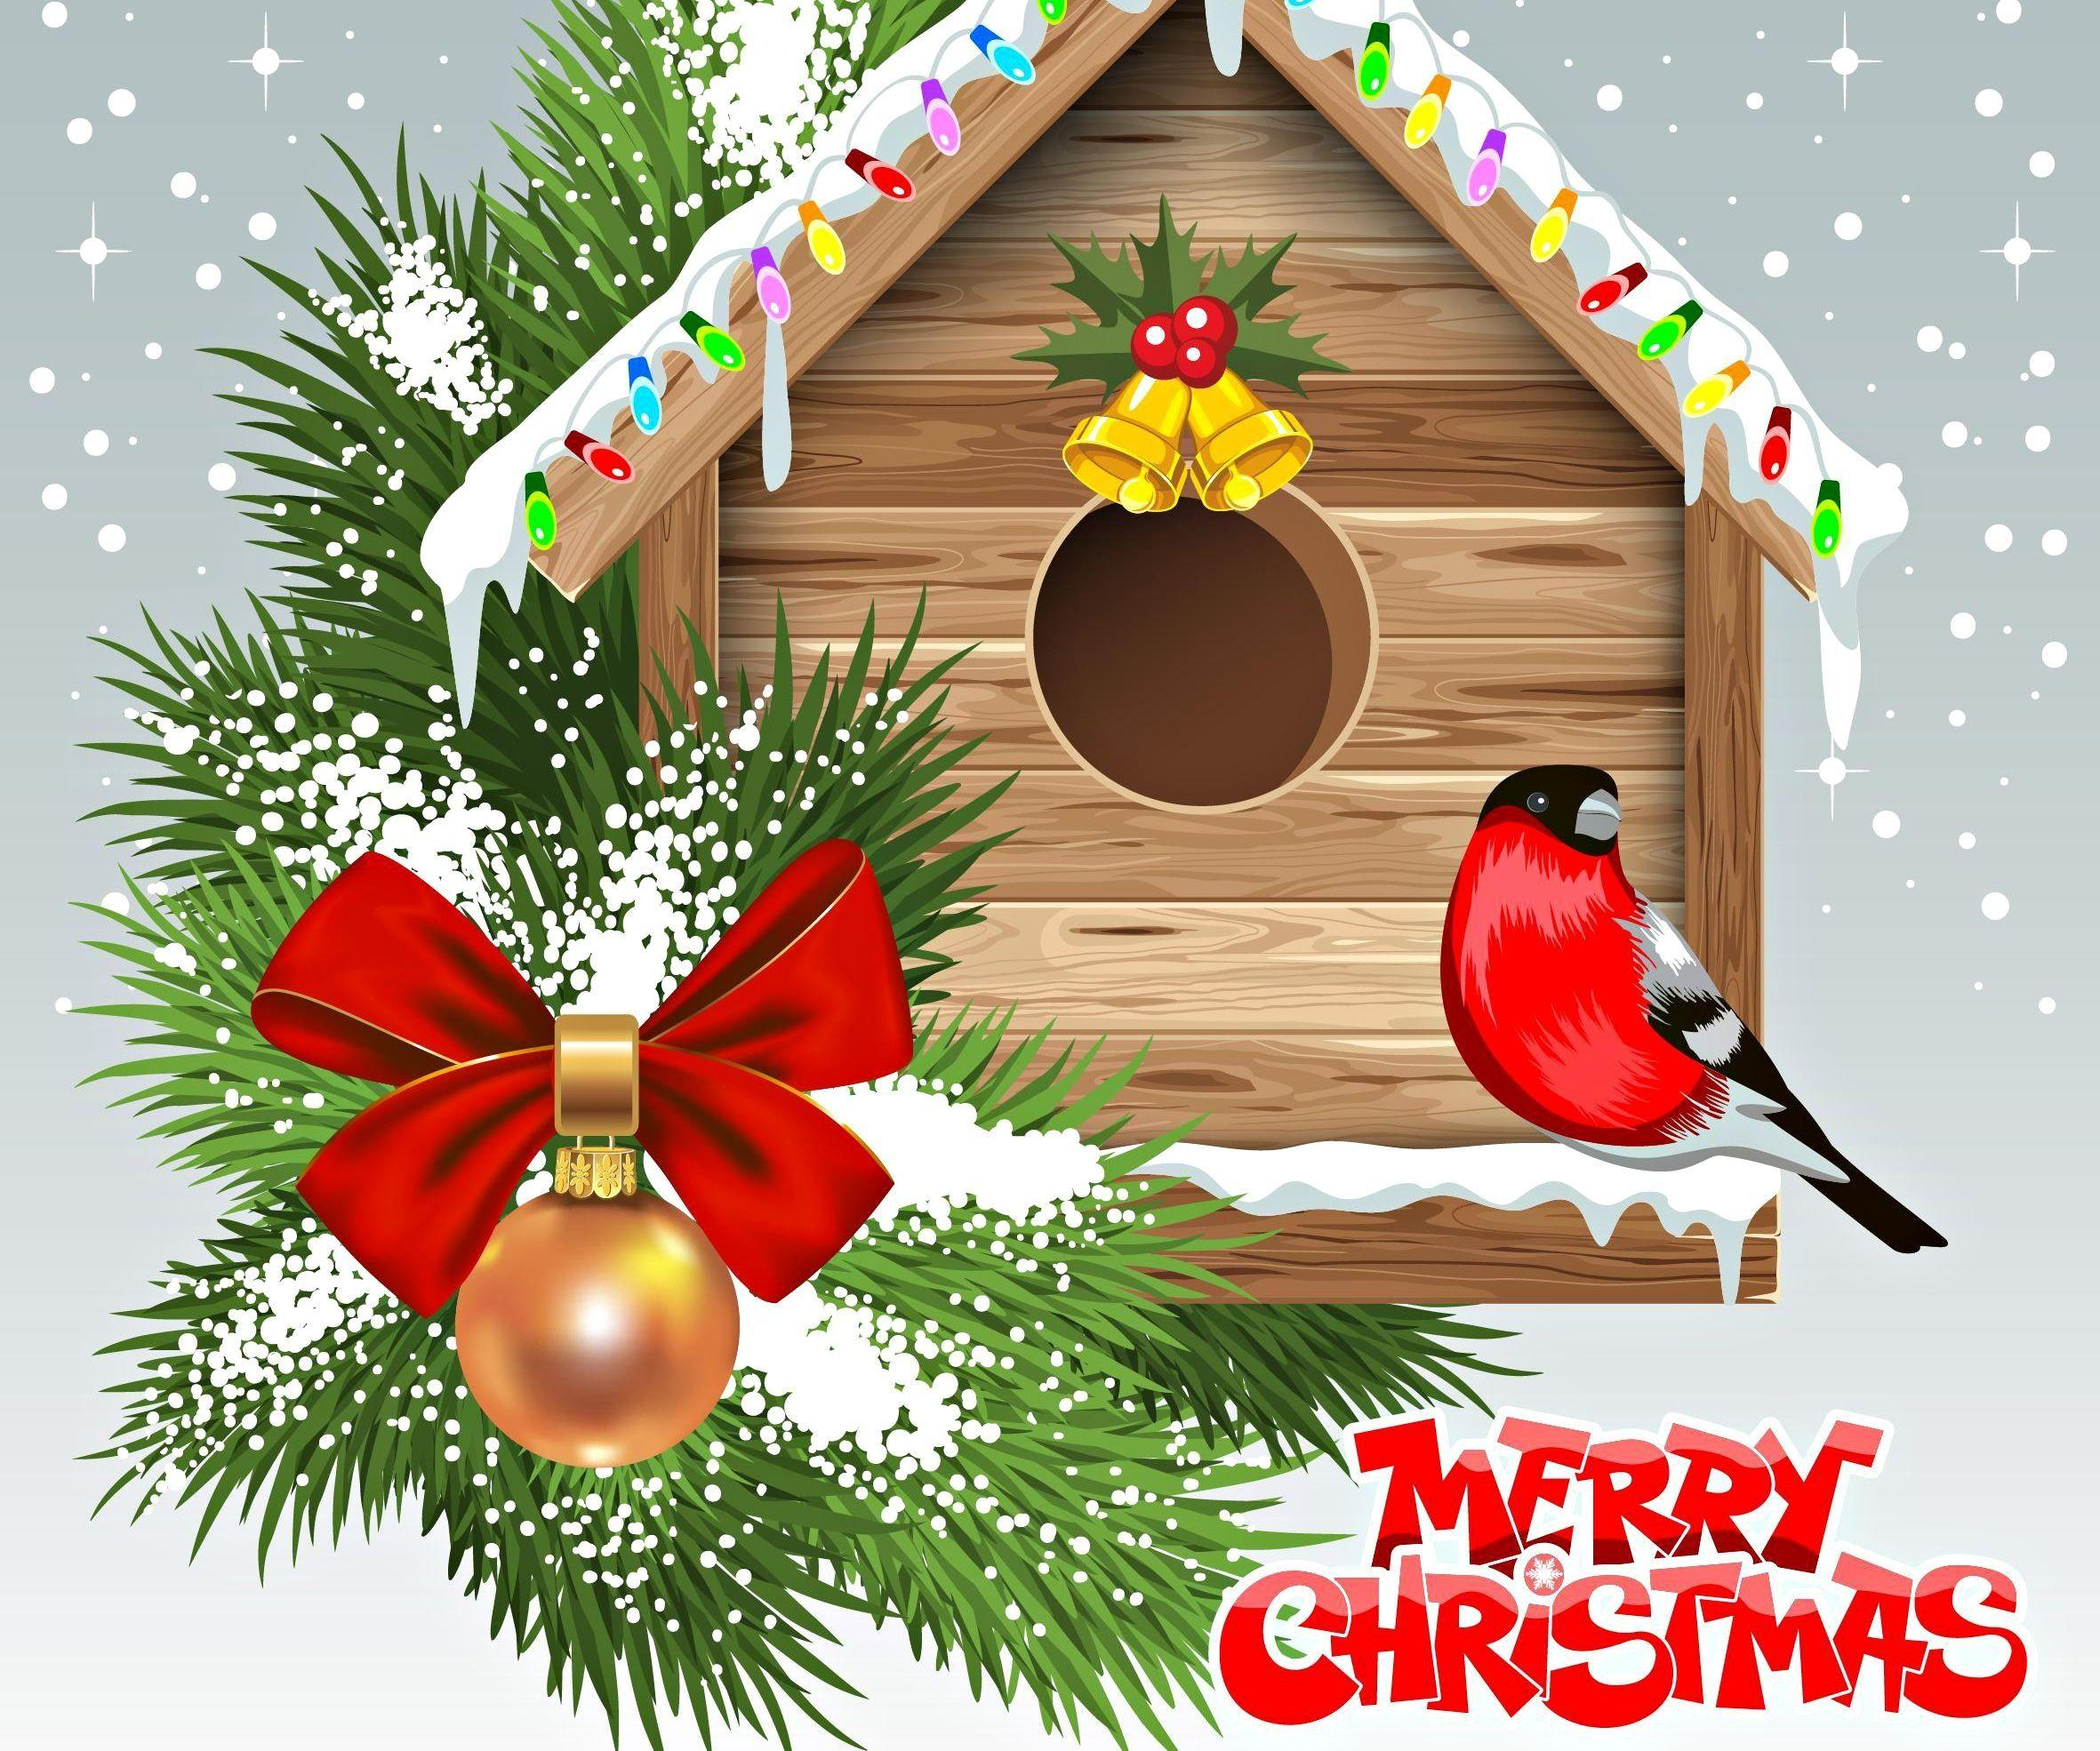 Merry Christmas Day Images | GetForum.net